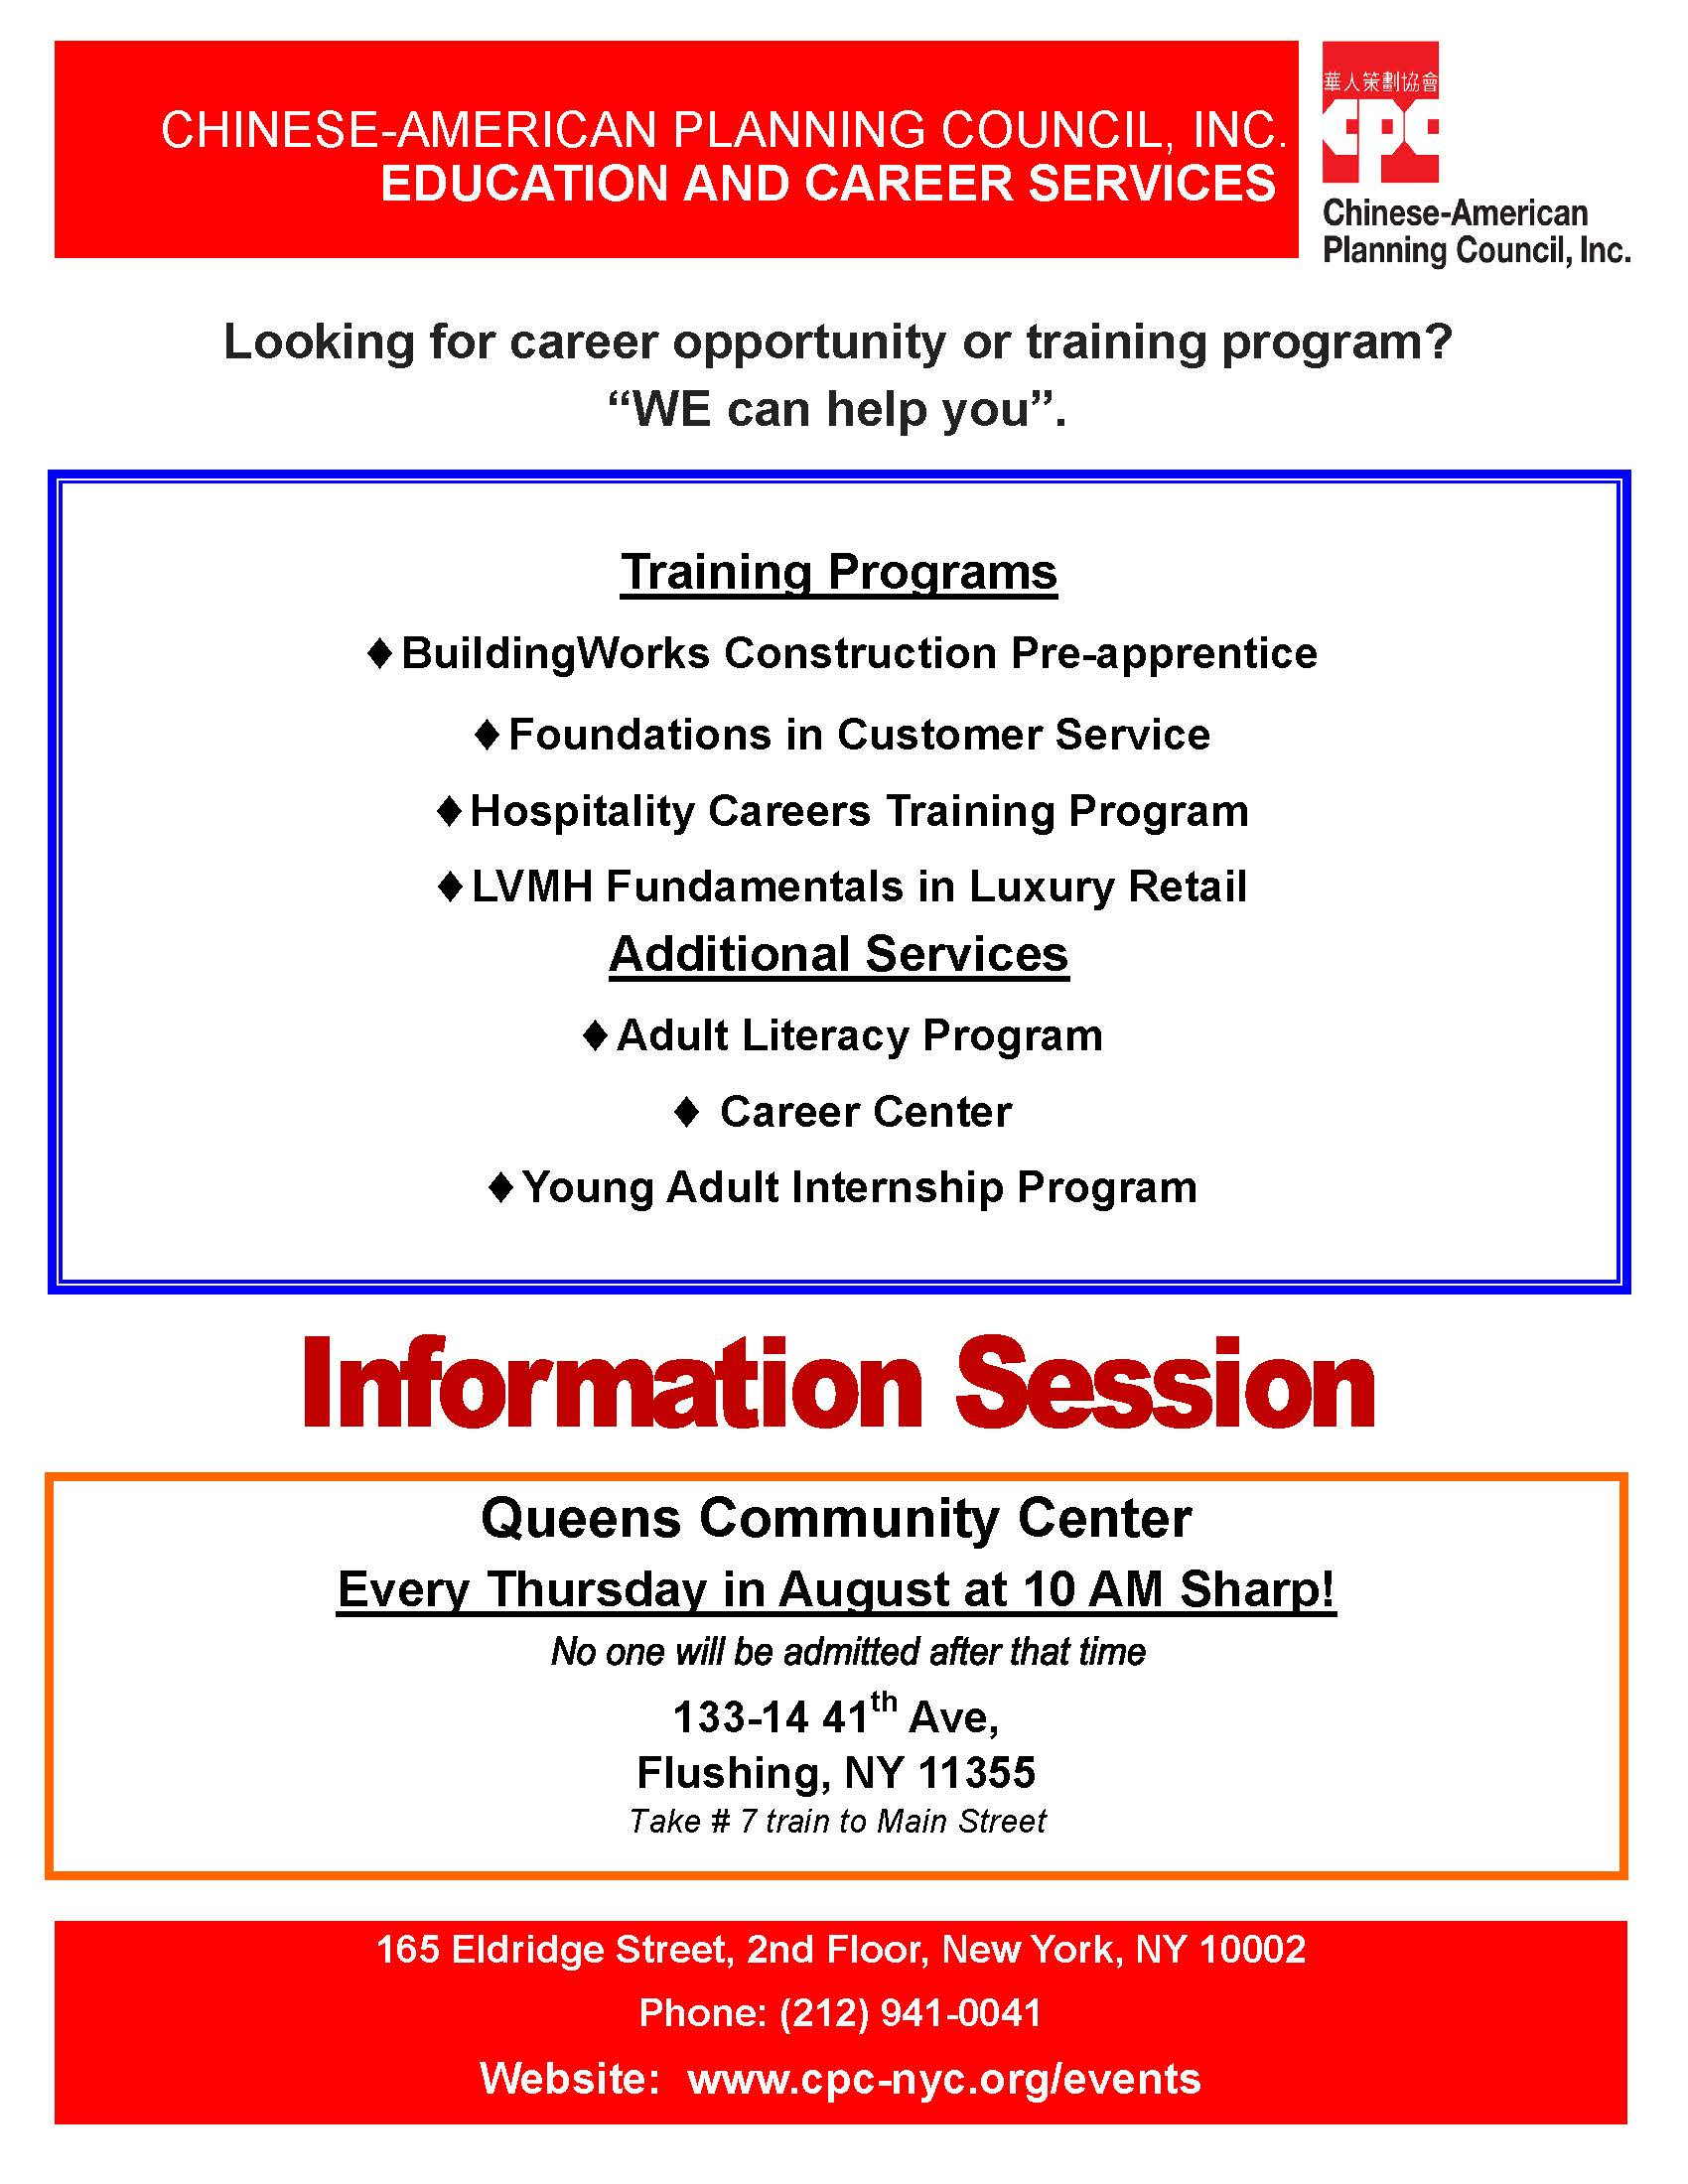 Education and Career Services Queens Information Session